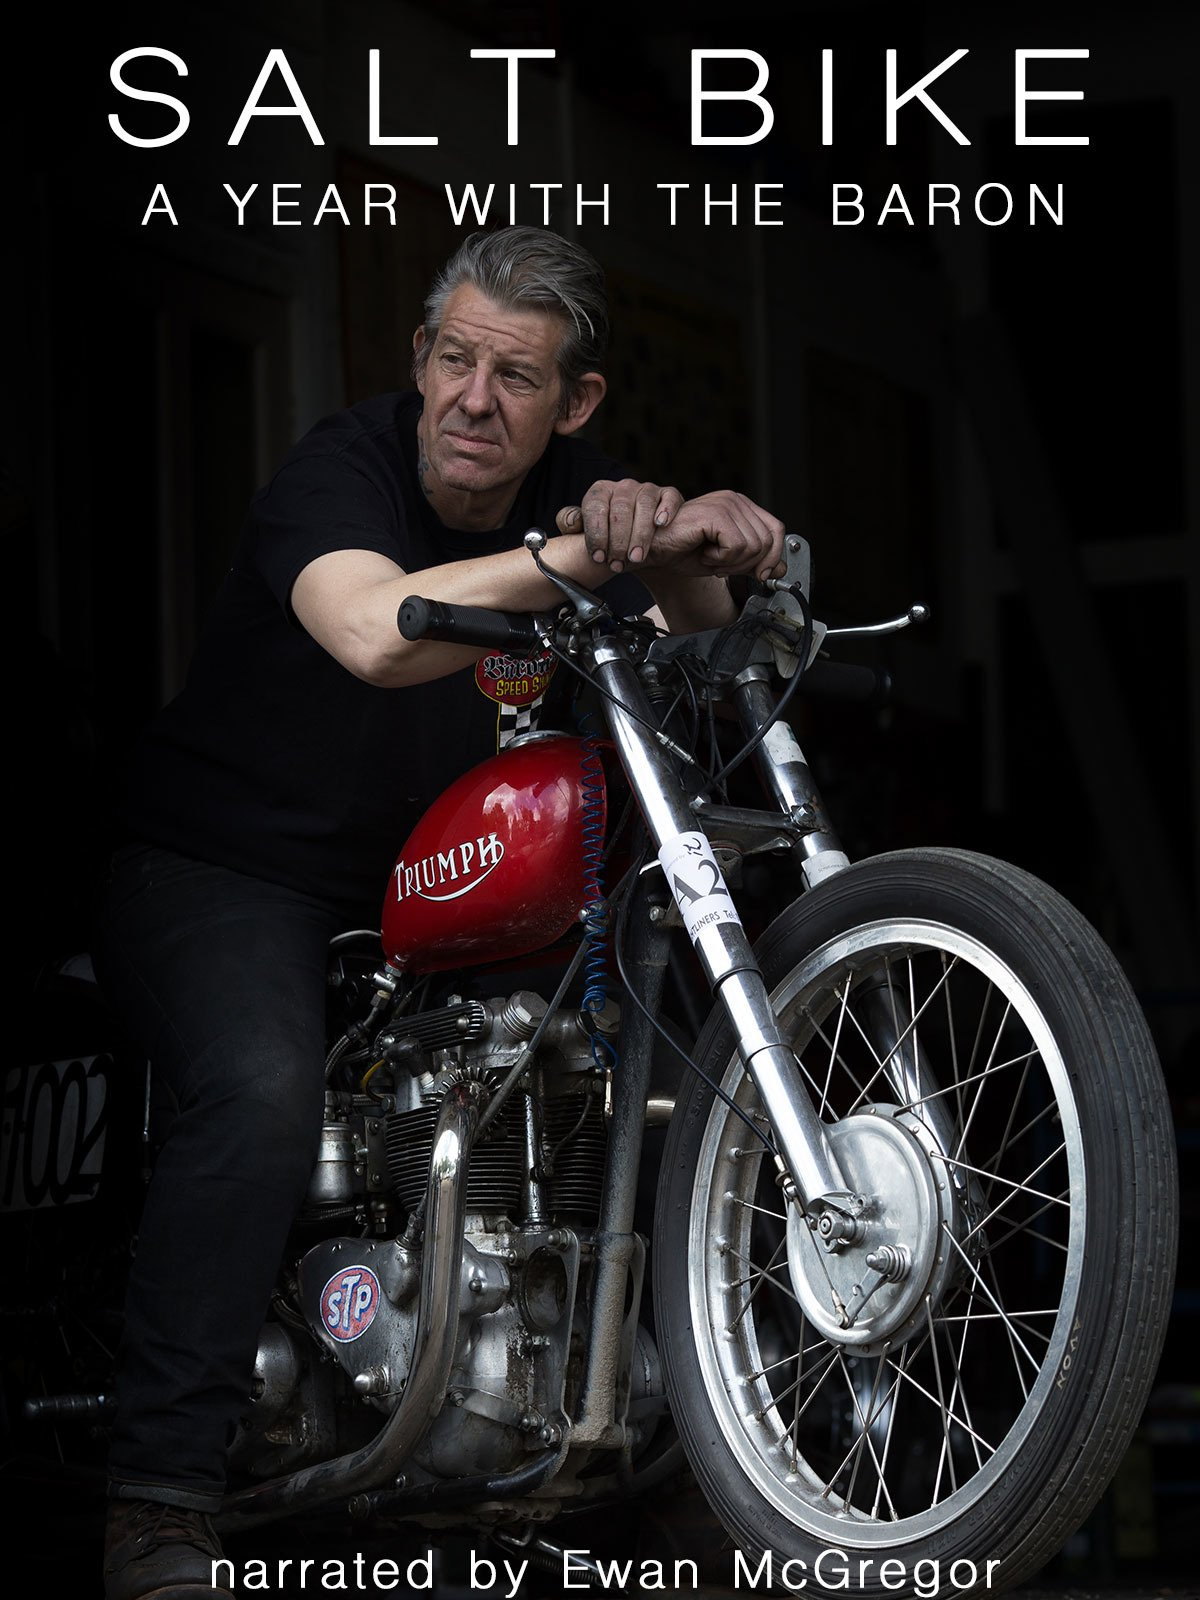 Salt Bike: a year with the Baron (narrated by Ewan McGregor)